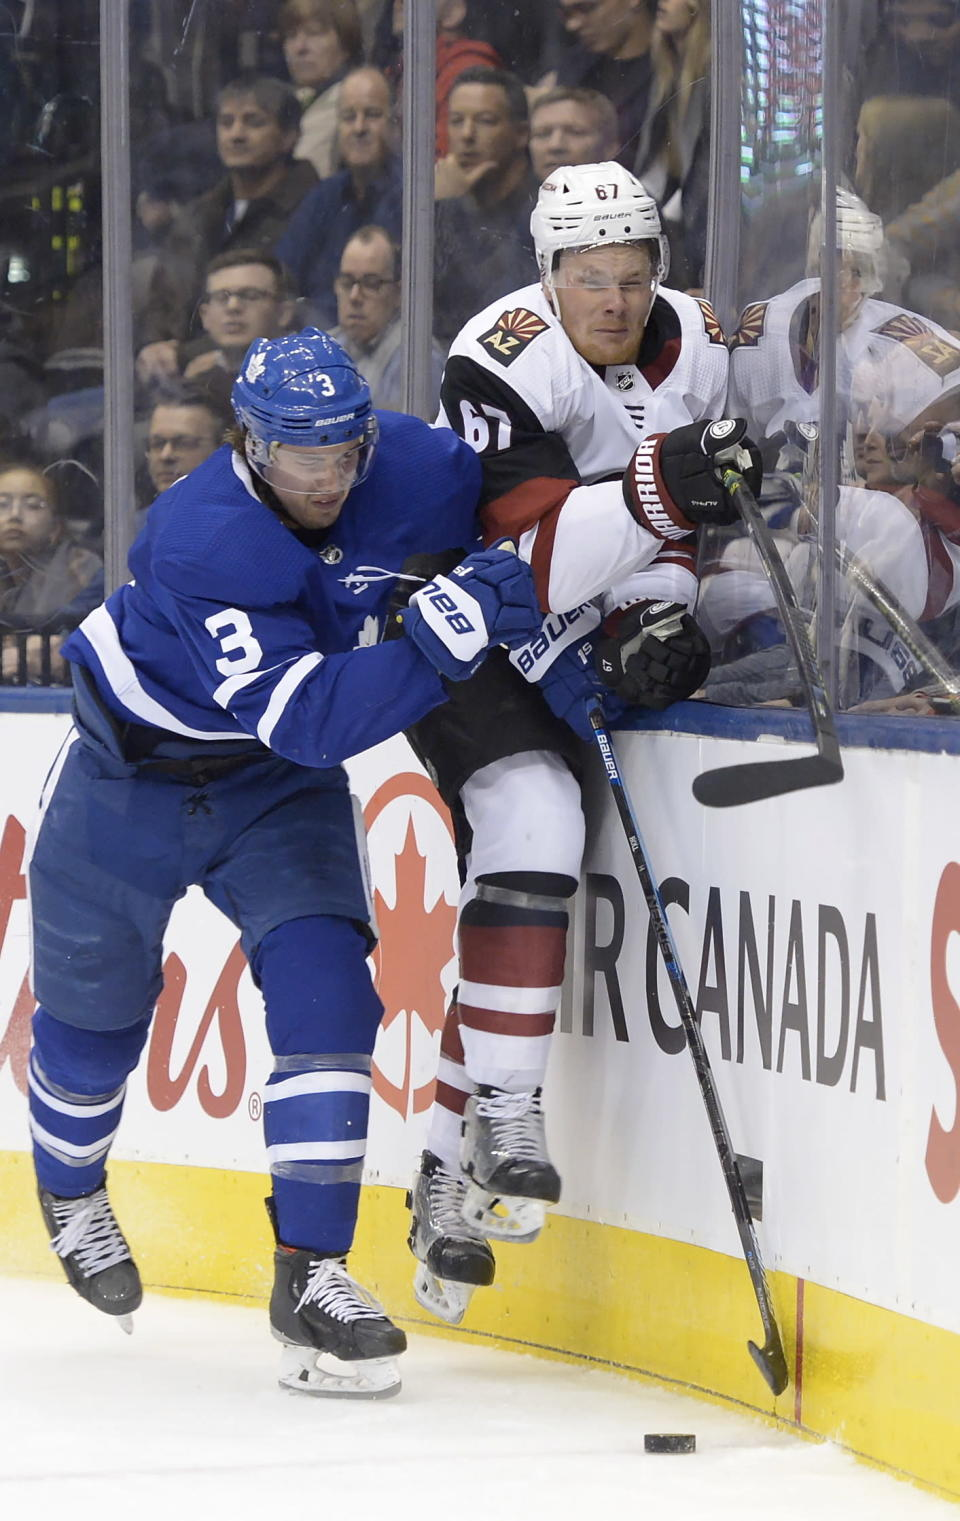 Toronto Maple Leafs defenseman Justin Holl (3) hits Arizona Coyotes left wing Lawson Crouse (67) into the boards during the third period of an NHL hockey game, Tuesday, Feb. 11, 2020 in Toronto. (Nathan Denette/The Canadian Press via AP)